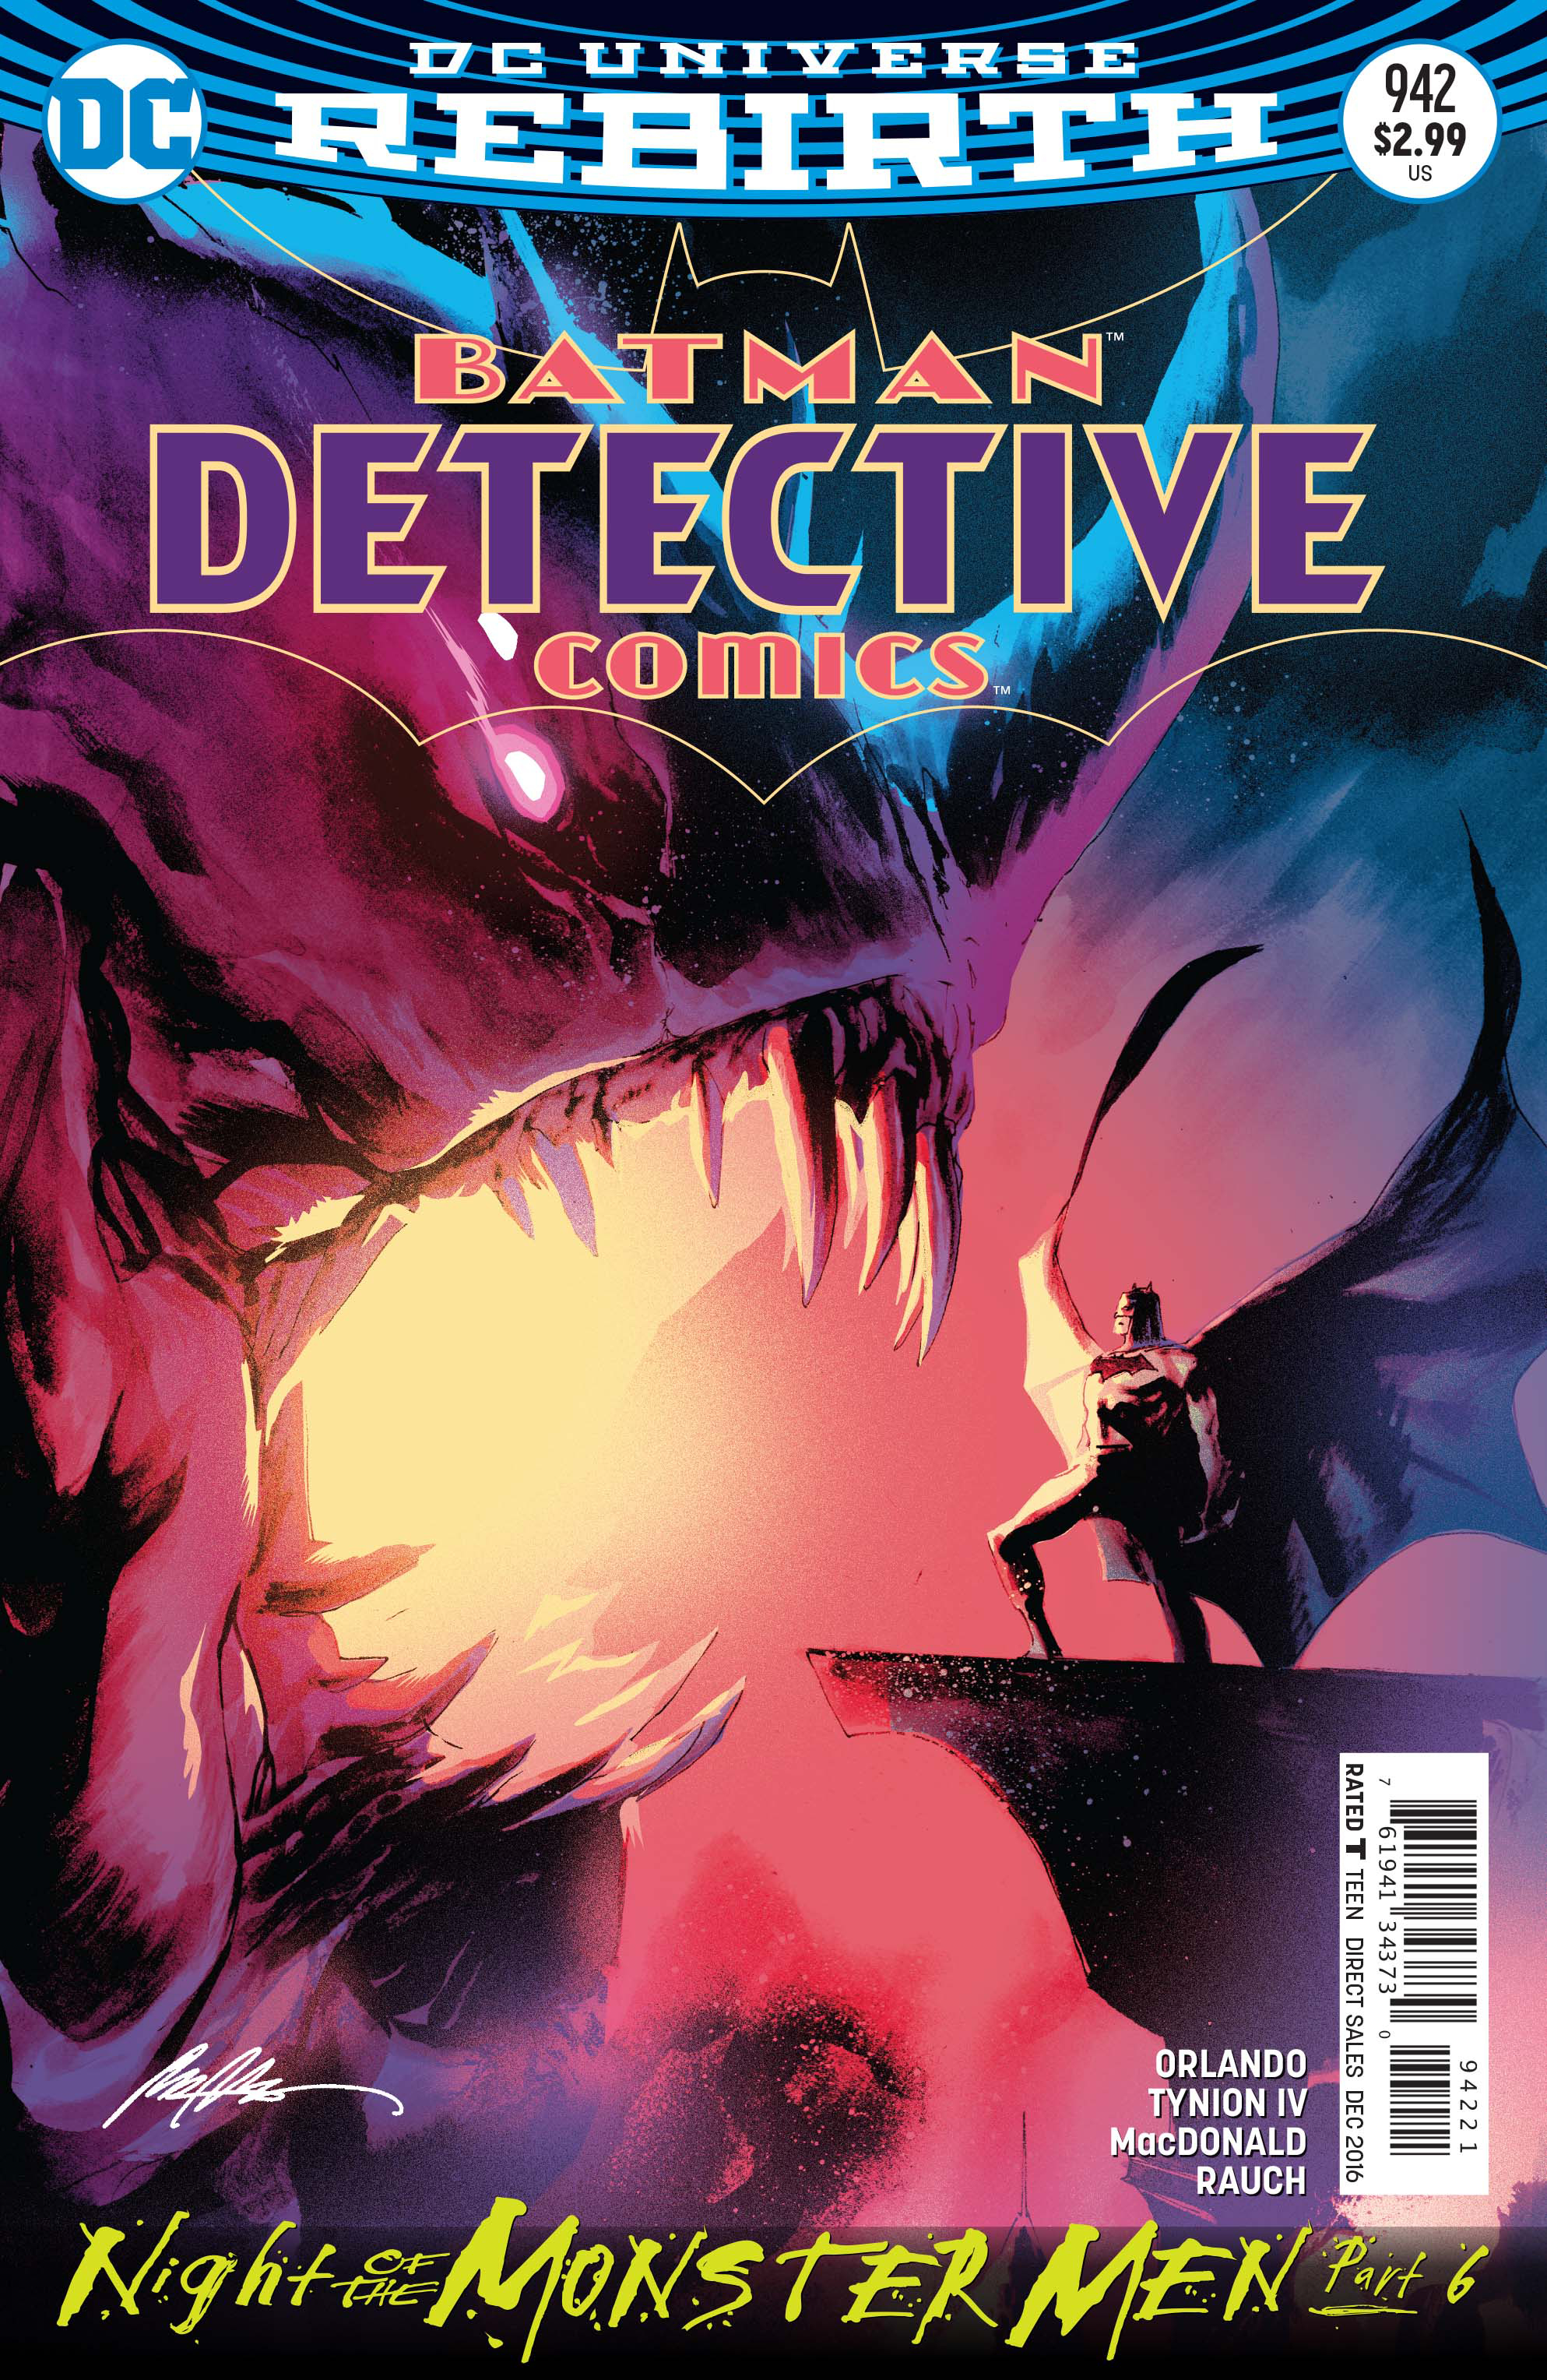 DETECTIVE COMICS #942 VAR ED (MONSTER MEN)